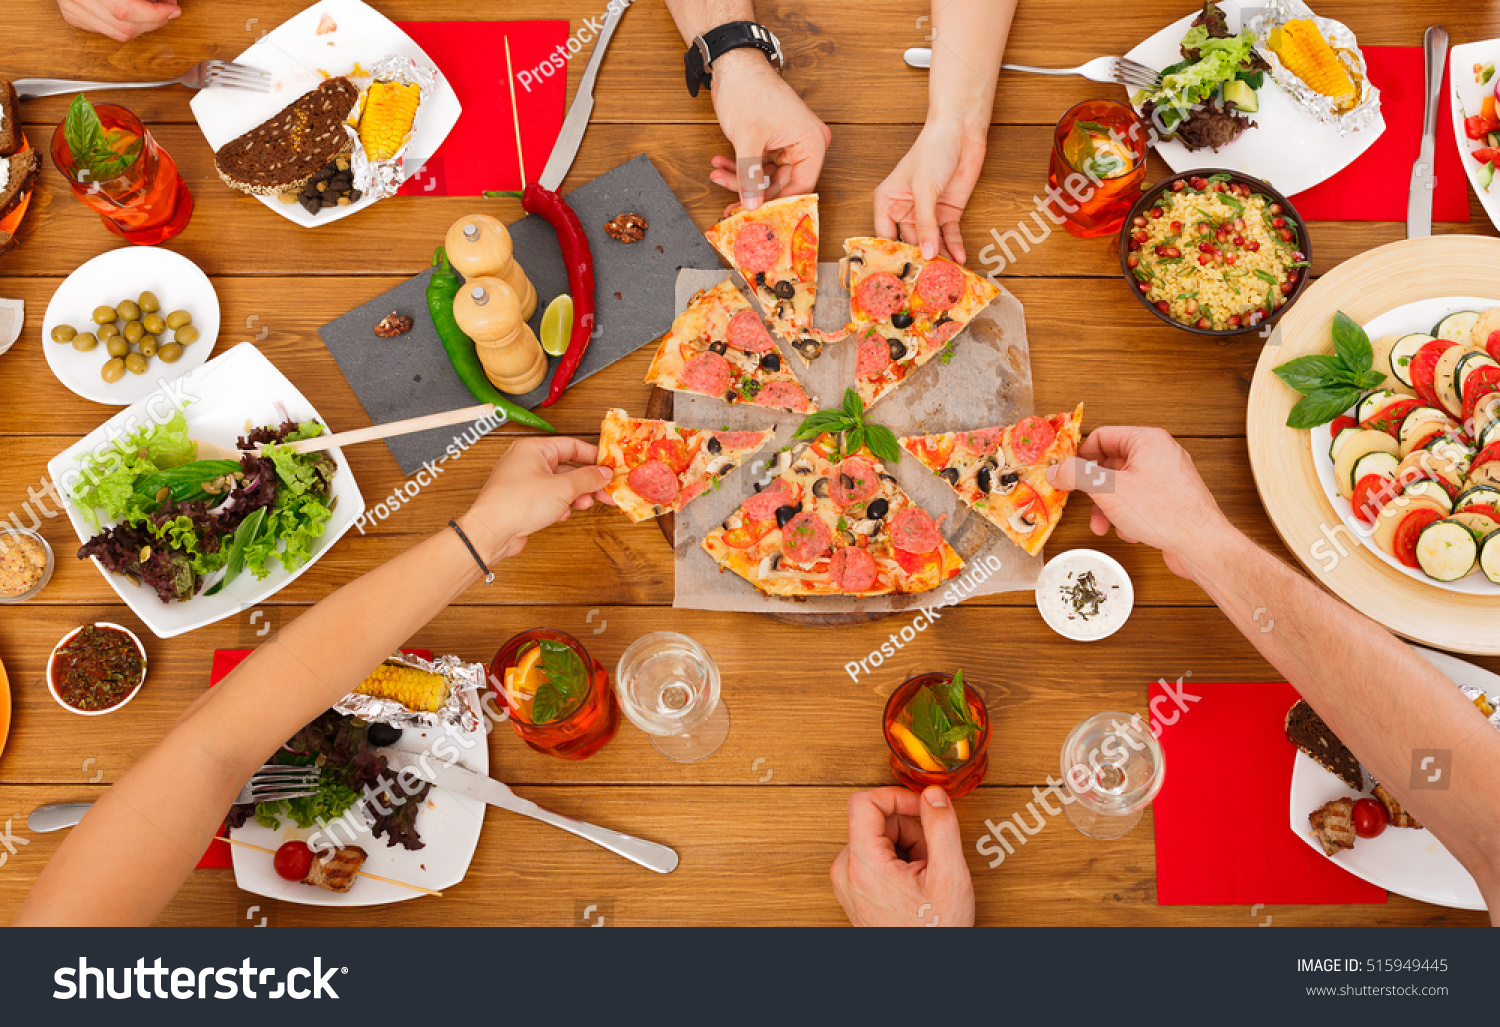 People eat pizza festive table served 515949445 shutterstock - Food network ricette a tavola con guy ...